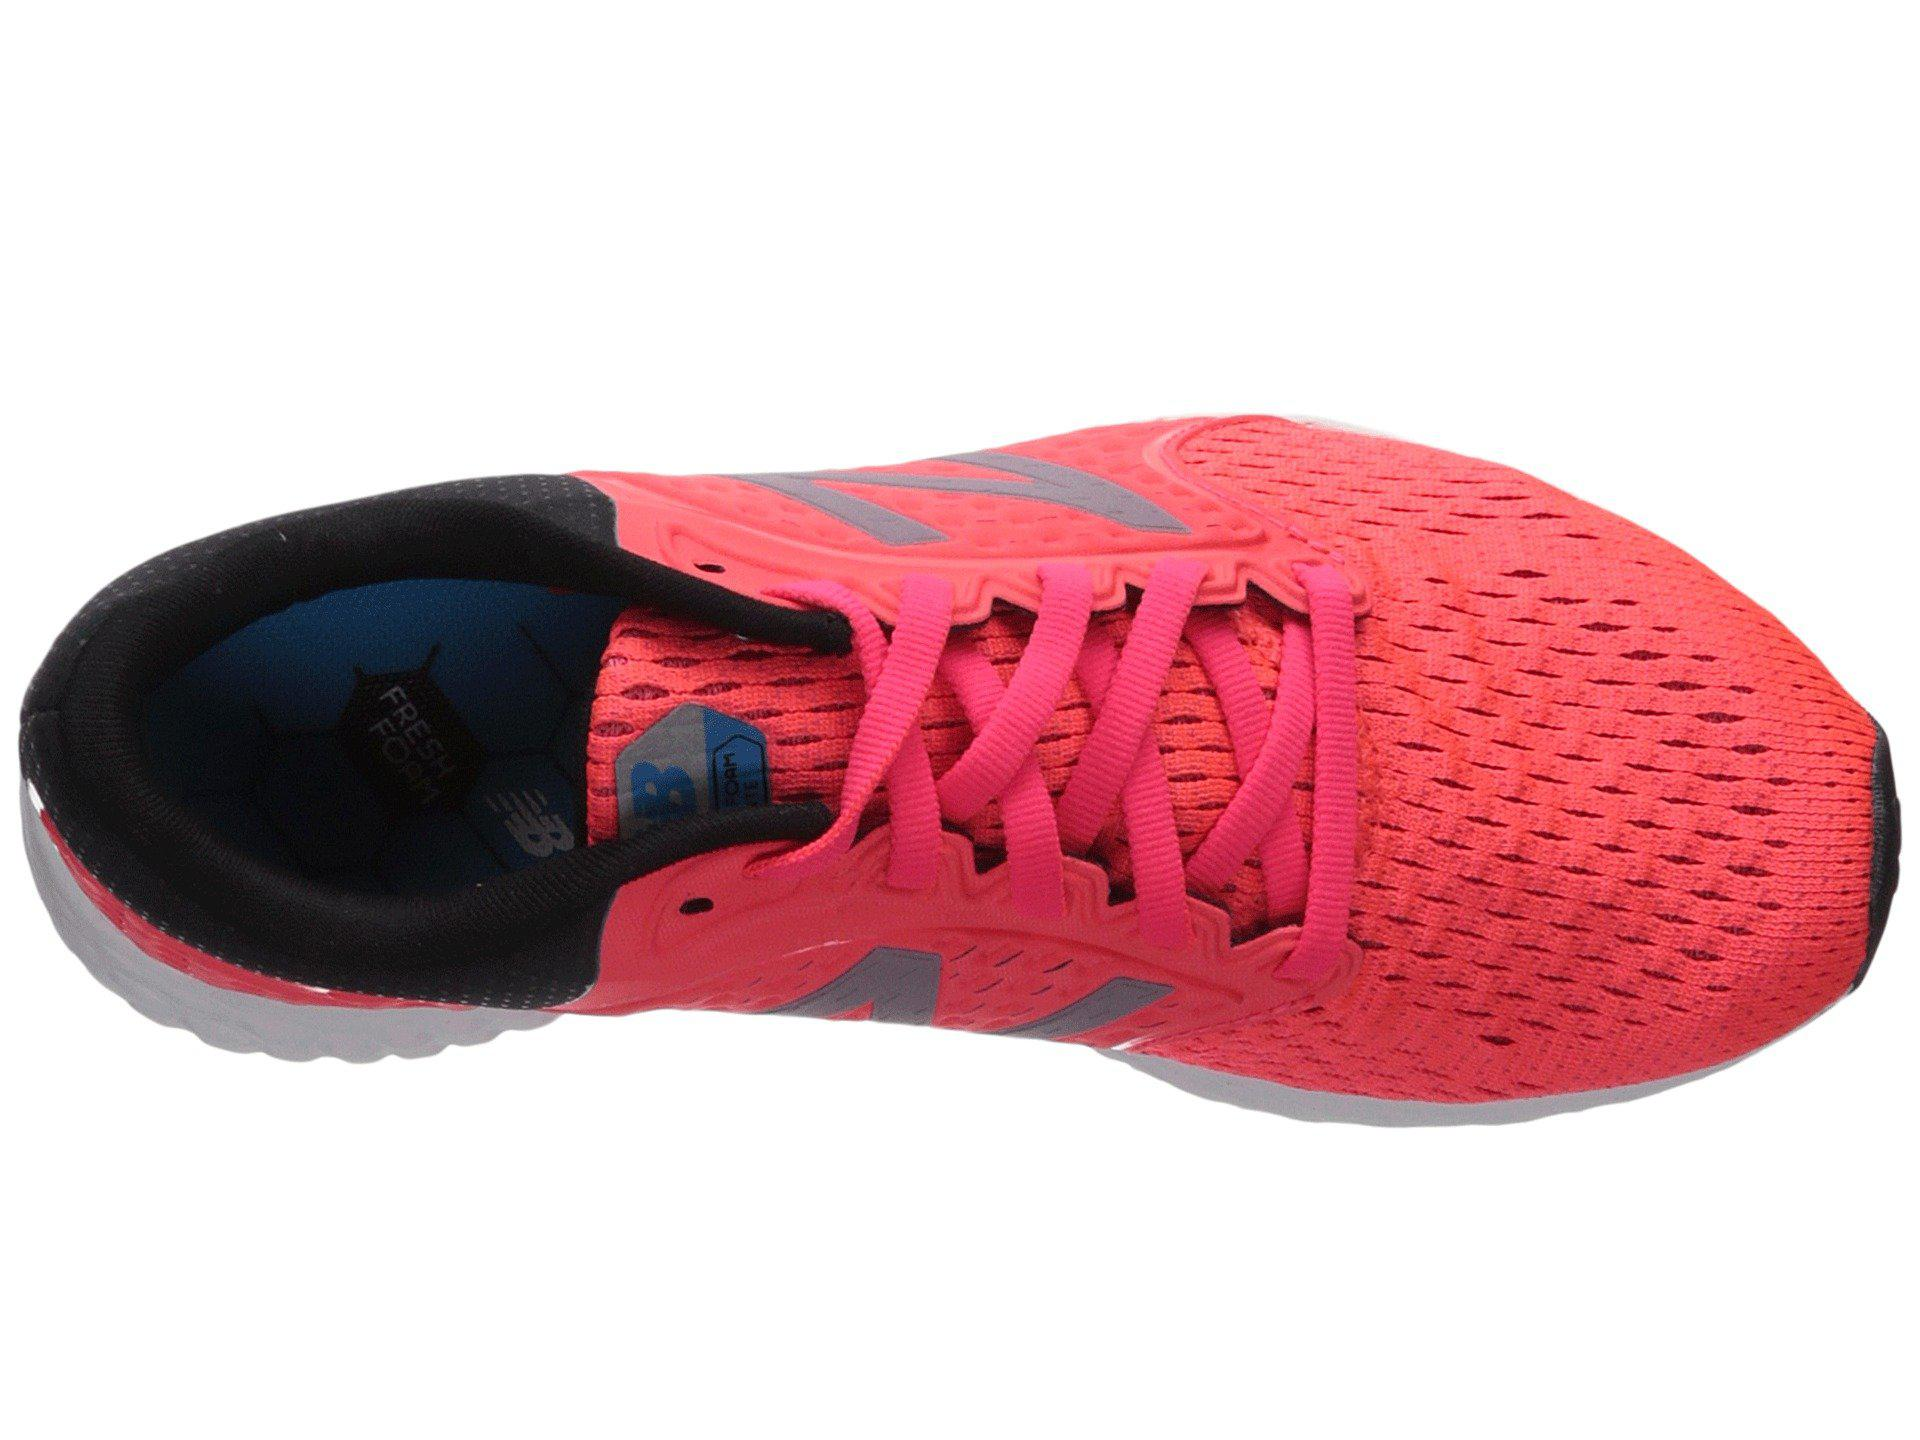 New Balance Pink Fresh Foam Zante V4 Running Shoes